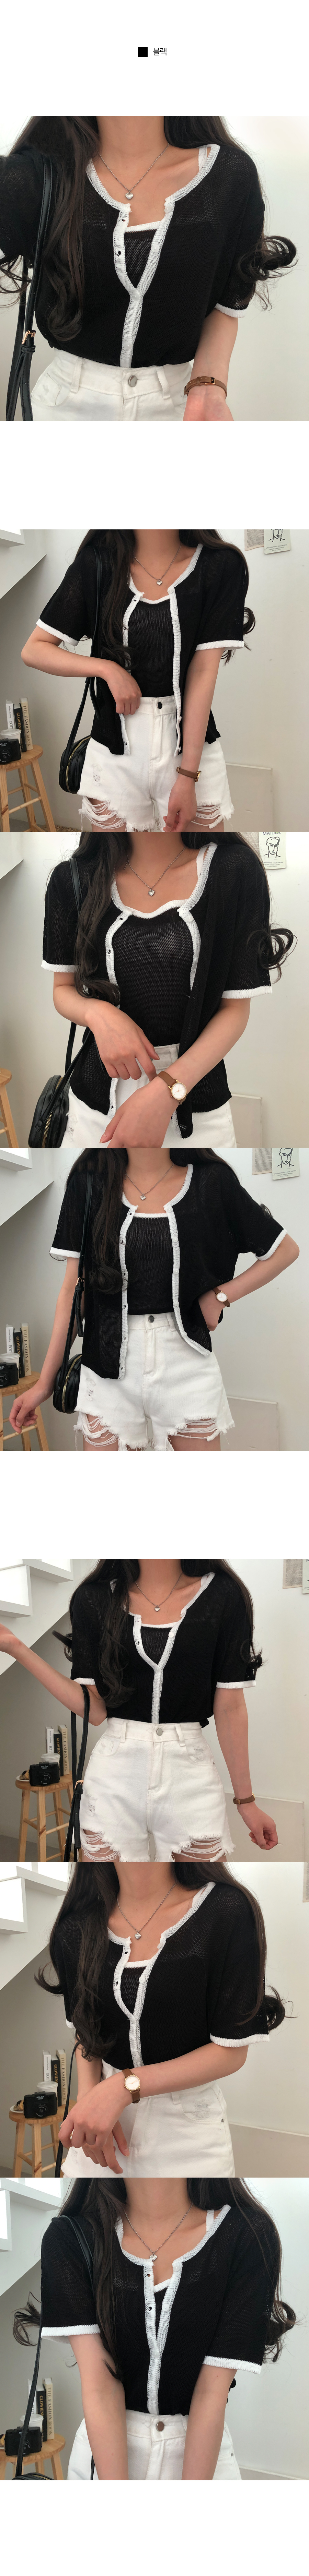 Jupy Color Sleeveless Cardigan Two-Piece Set